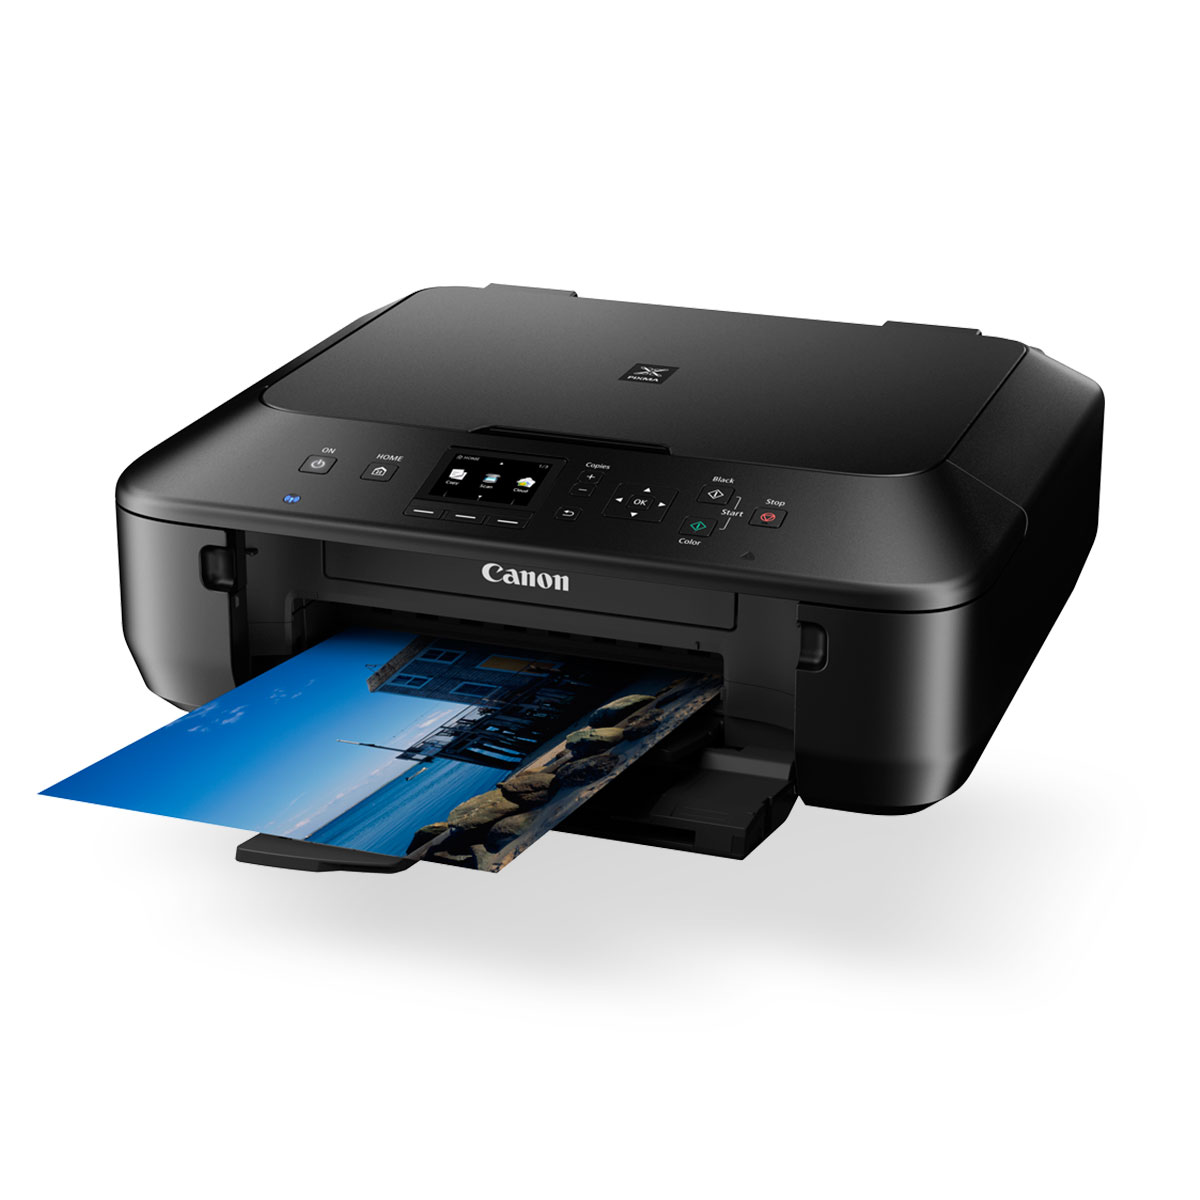 Canon PIXMA MG5660 black printed paper front angled